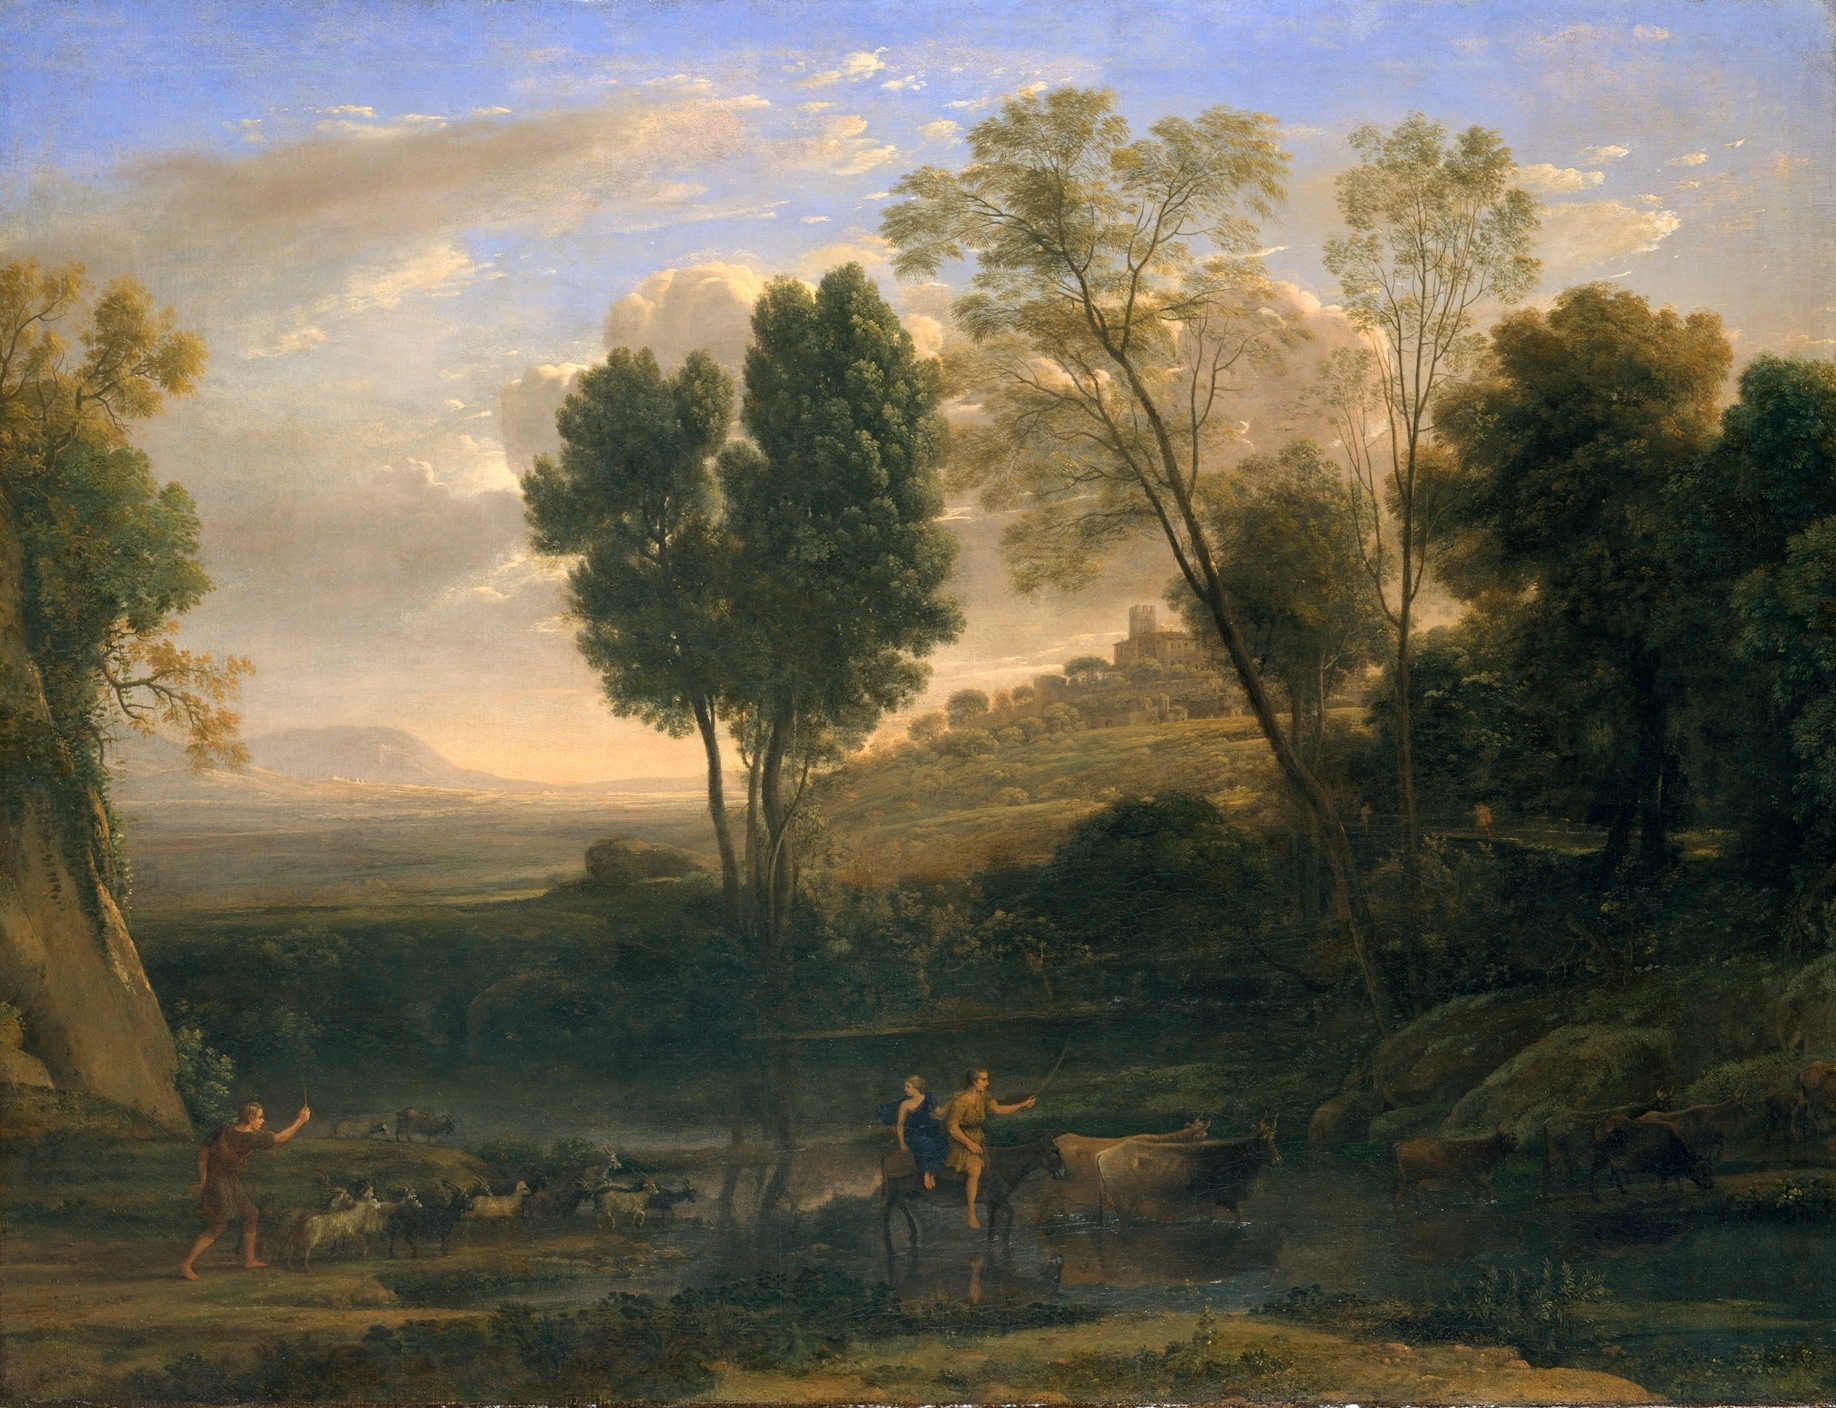 Amanecer (Sunrise), oil on canvas by Claude Lorrain, 1646-1647. Currently in the collection of the Metropolitan Museum of Art (not on display).